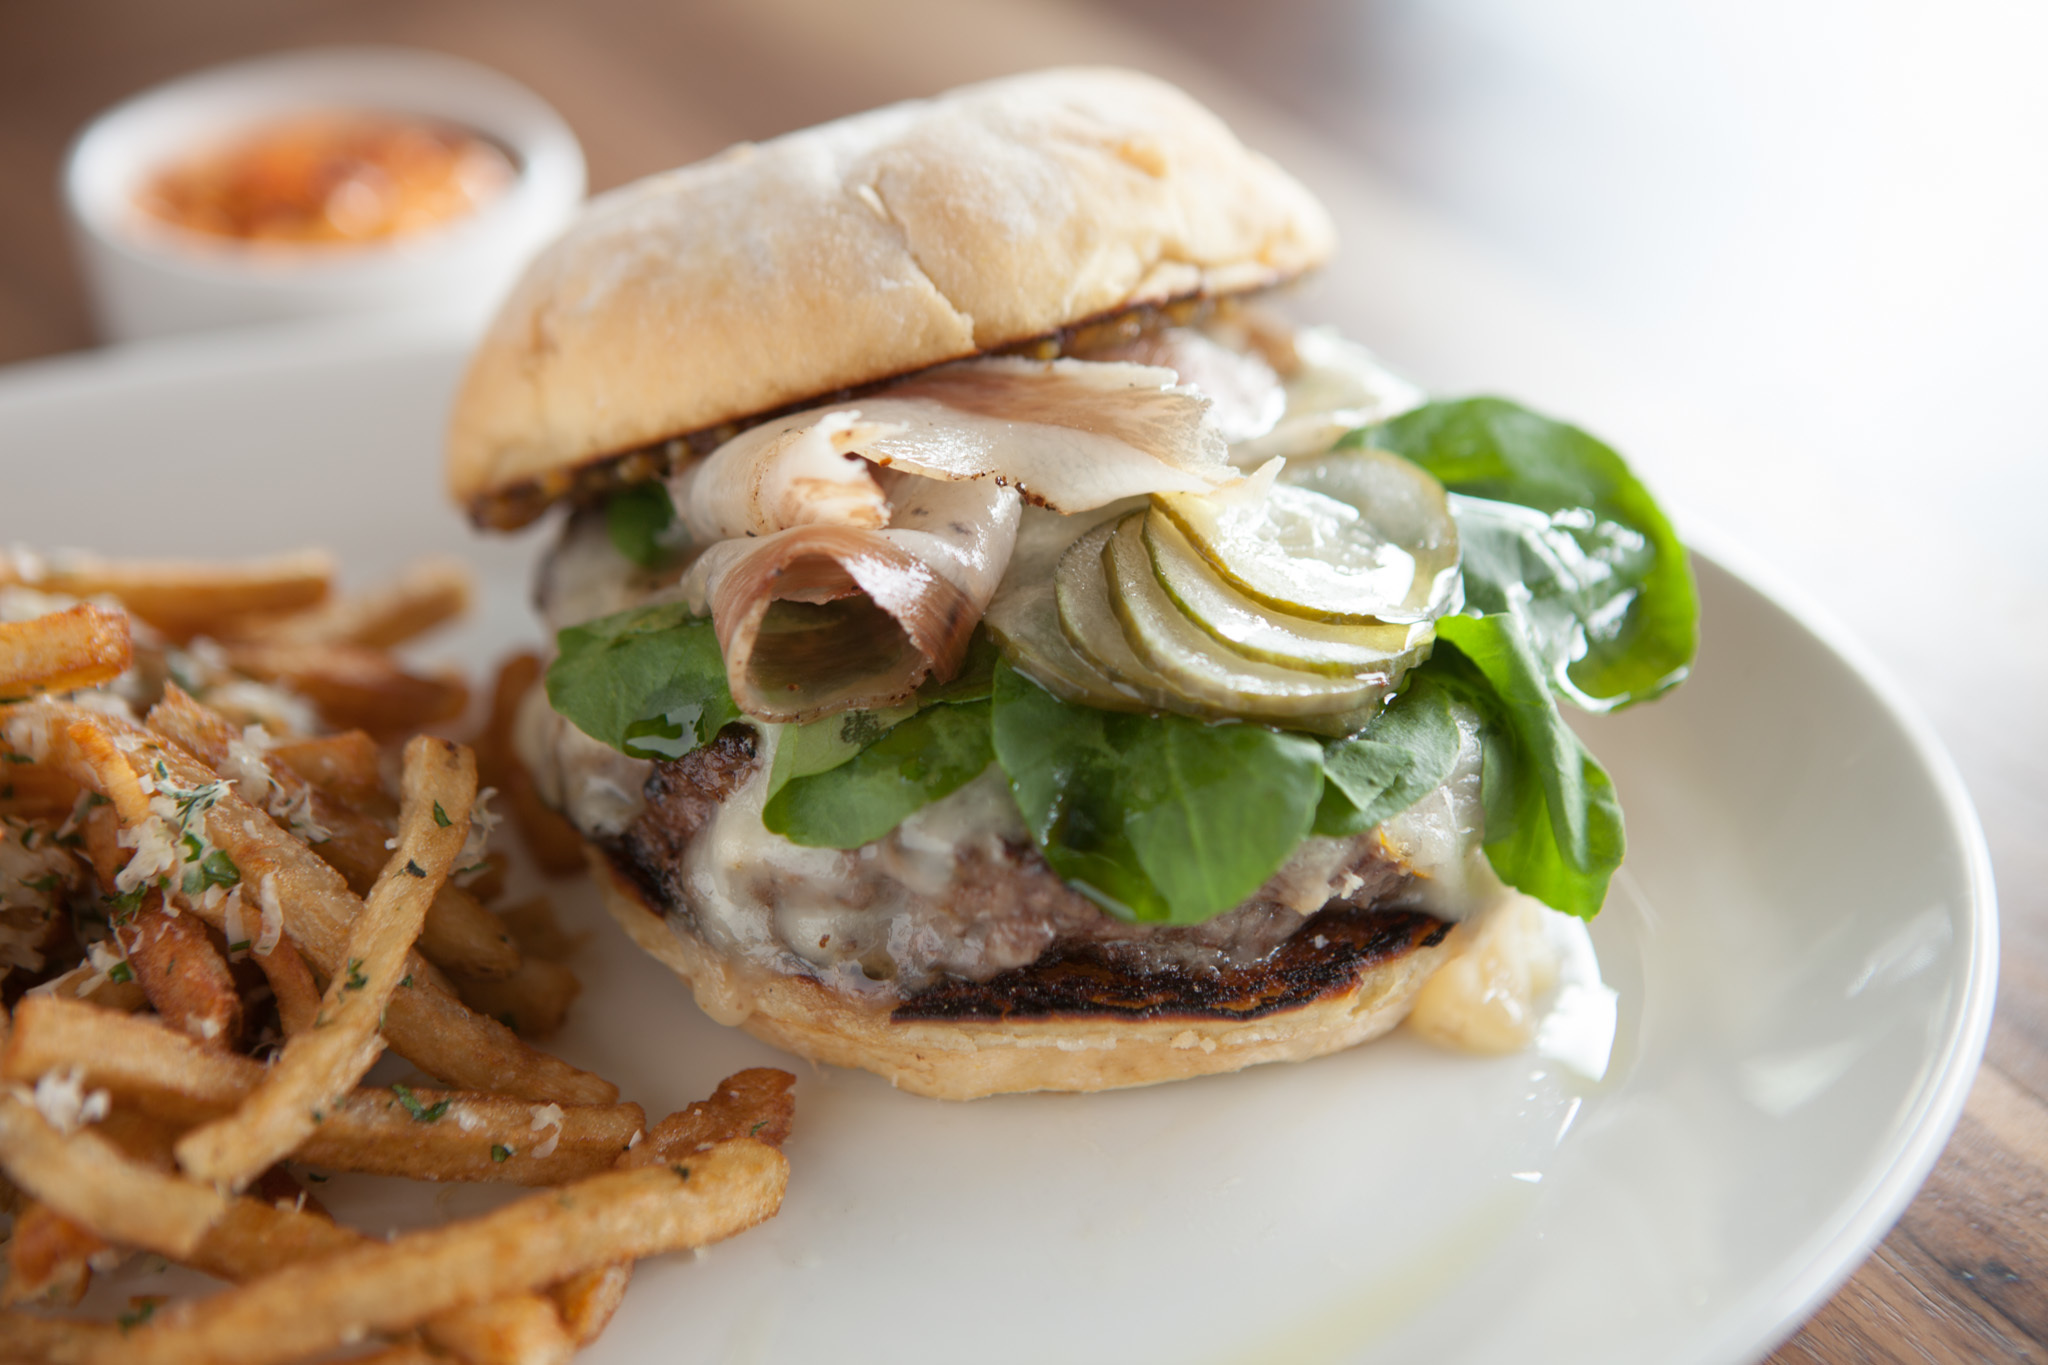 Best new burgers of 2014